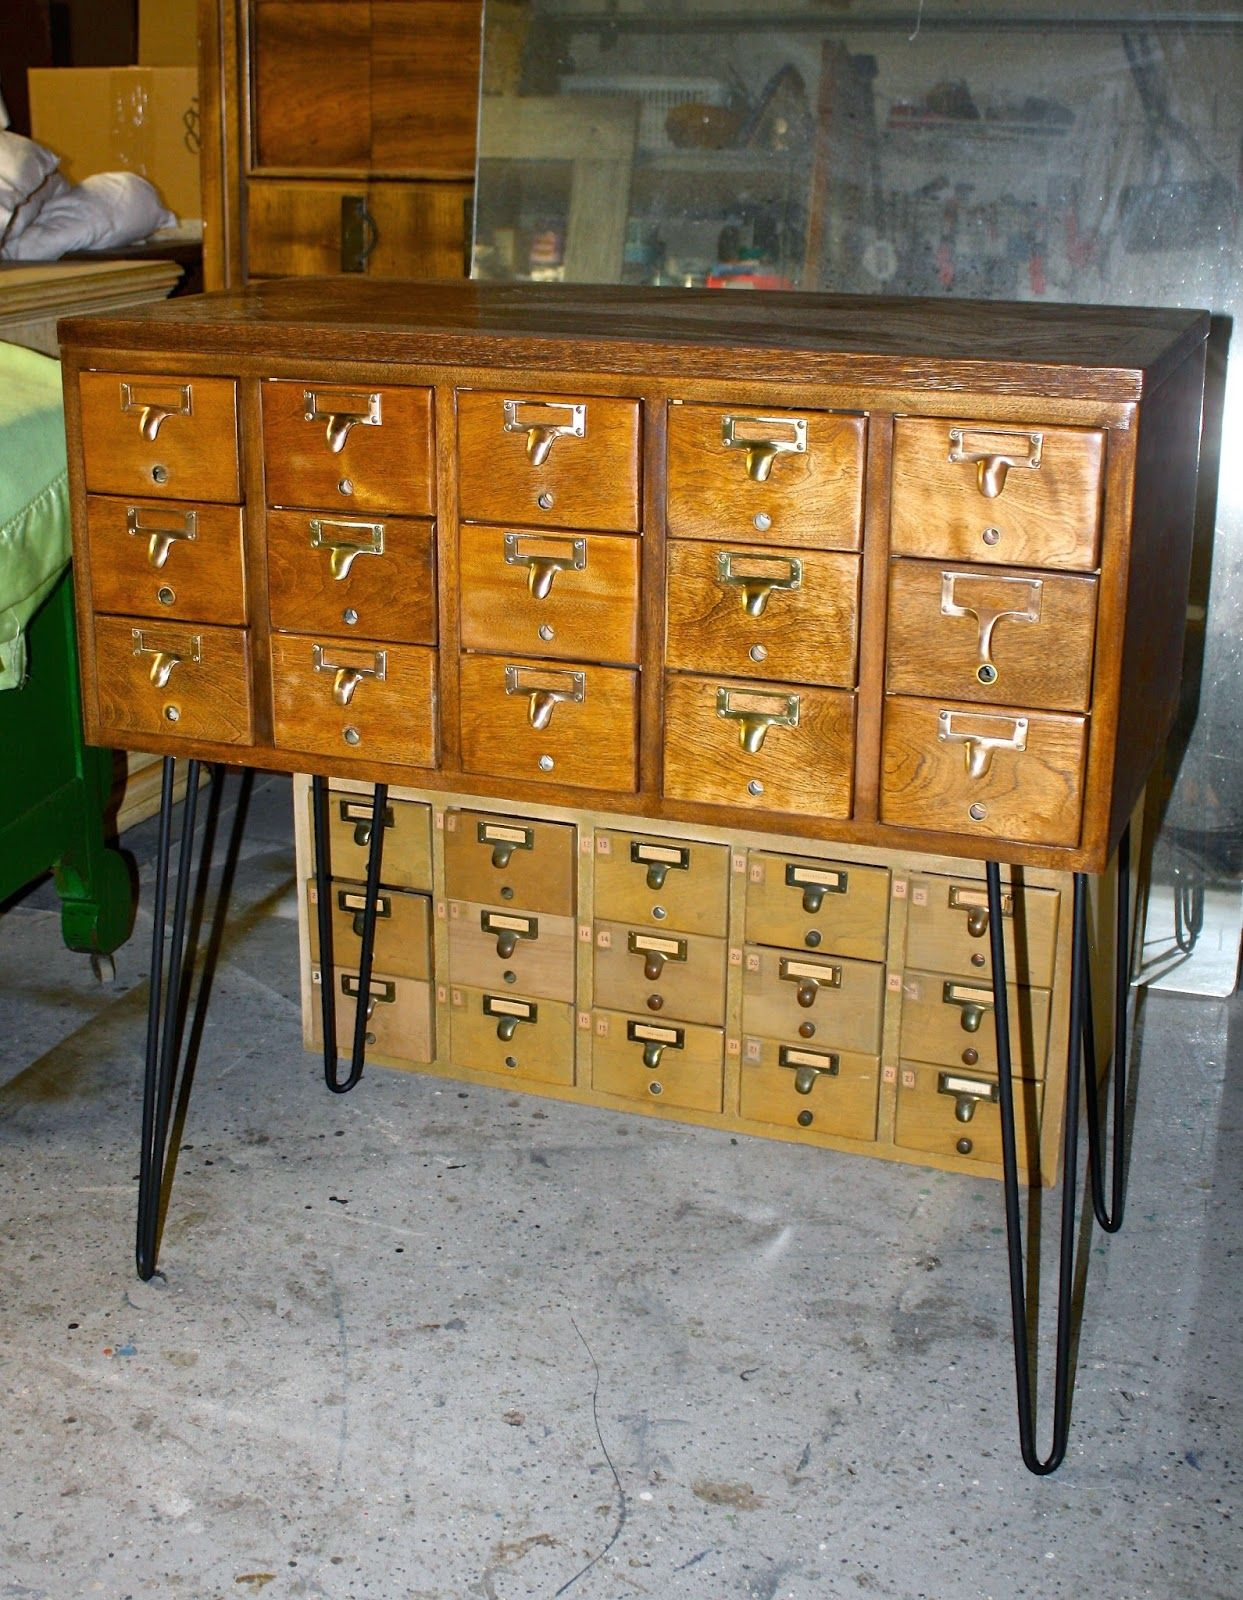 The Elusive Card Catalogs and How I Repurposed Min